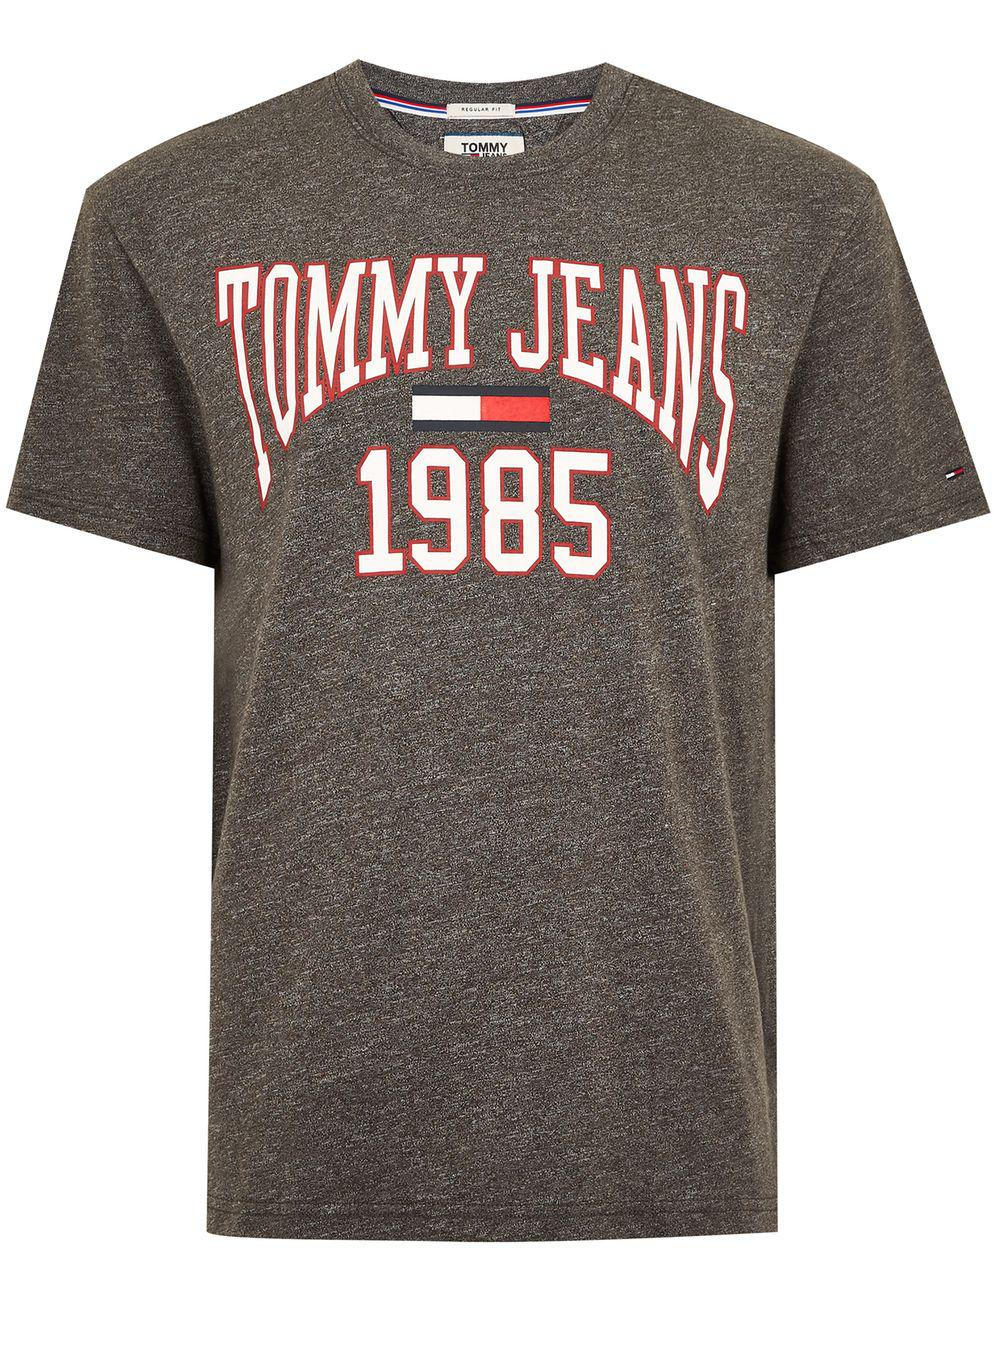 In Gray Grey College Lyst For Men T Topman Tommy Jeans Shirt qPwxUCY